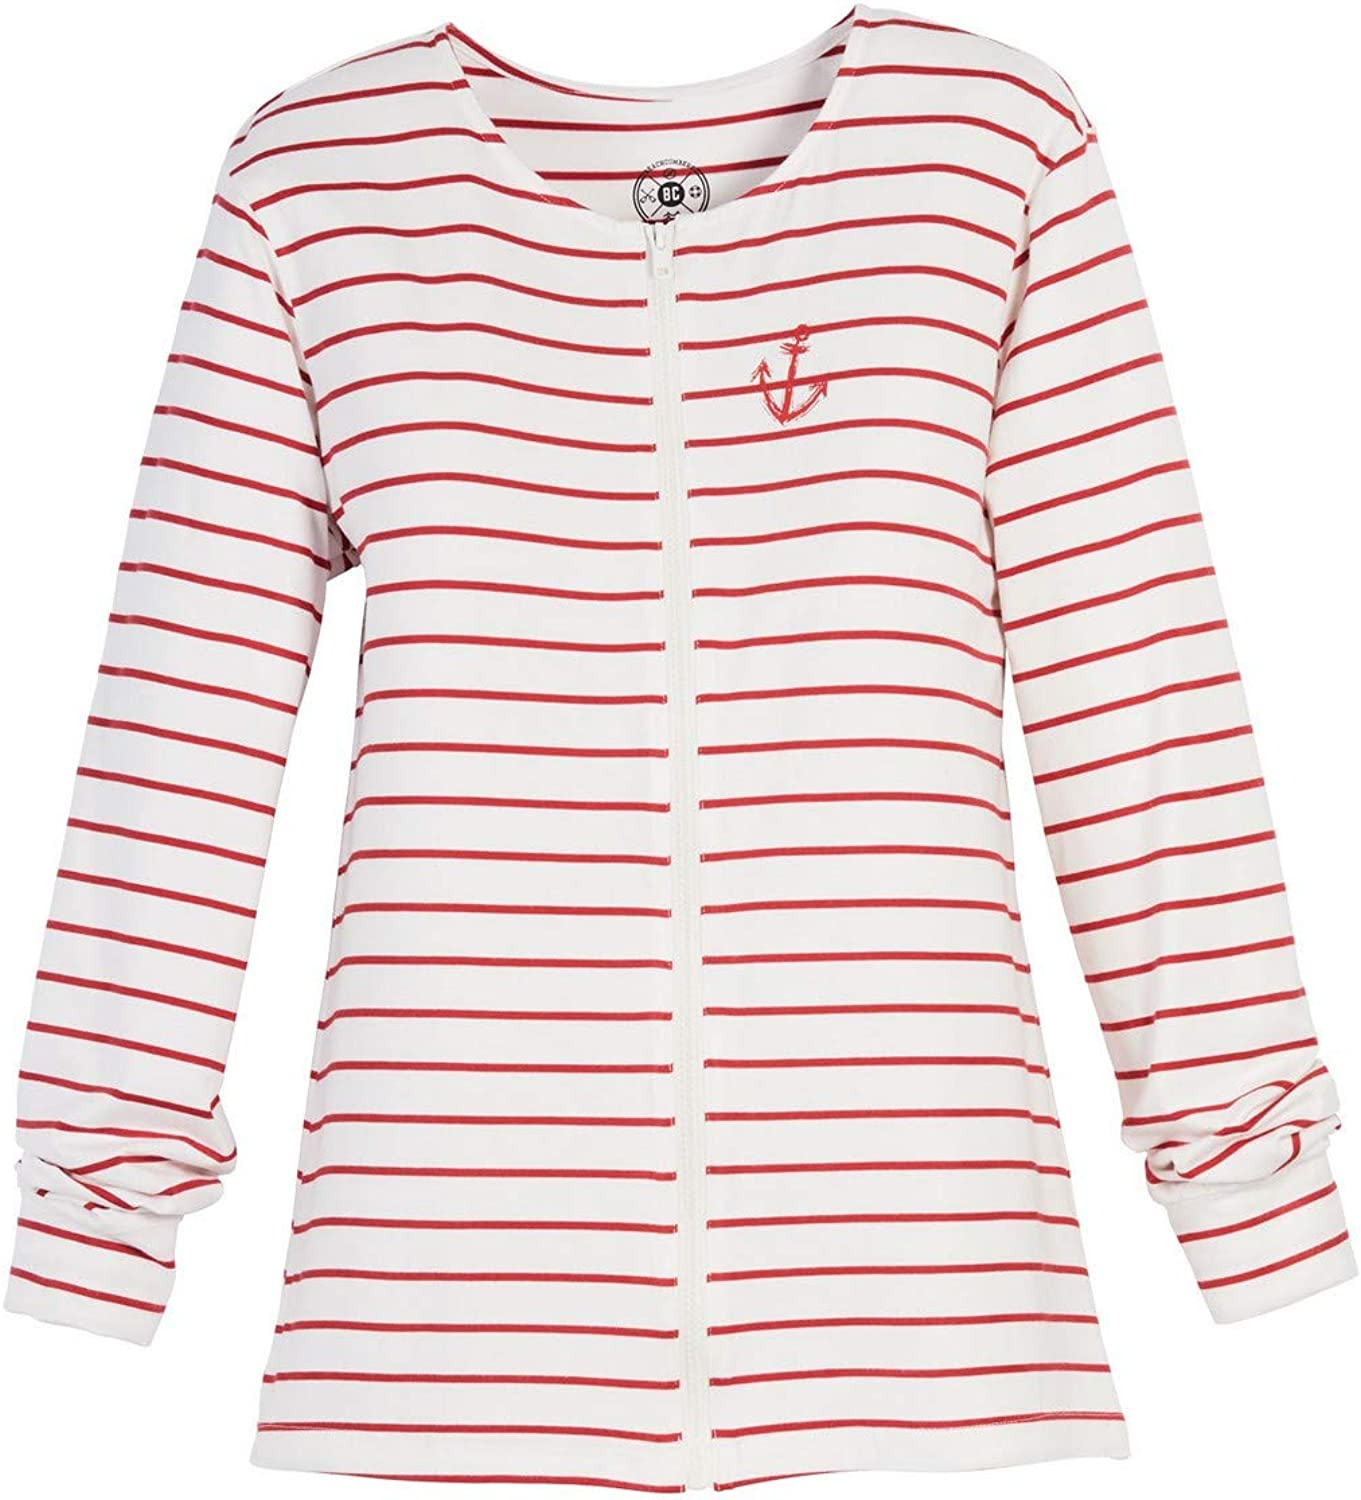 Beachcombers Womens Red Stripe Anchor Jacket with Zipper